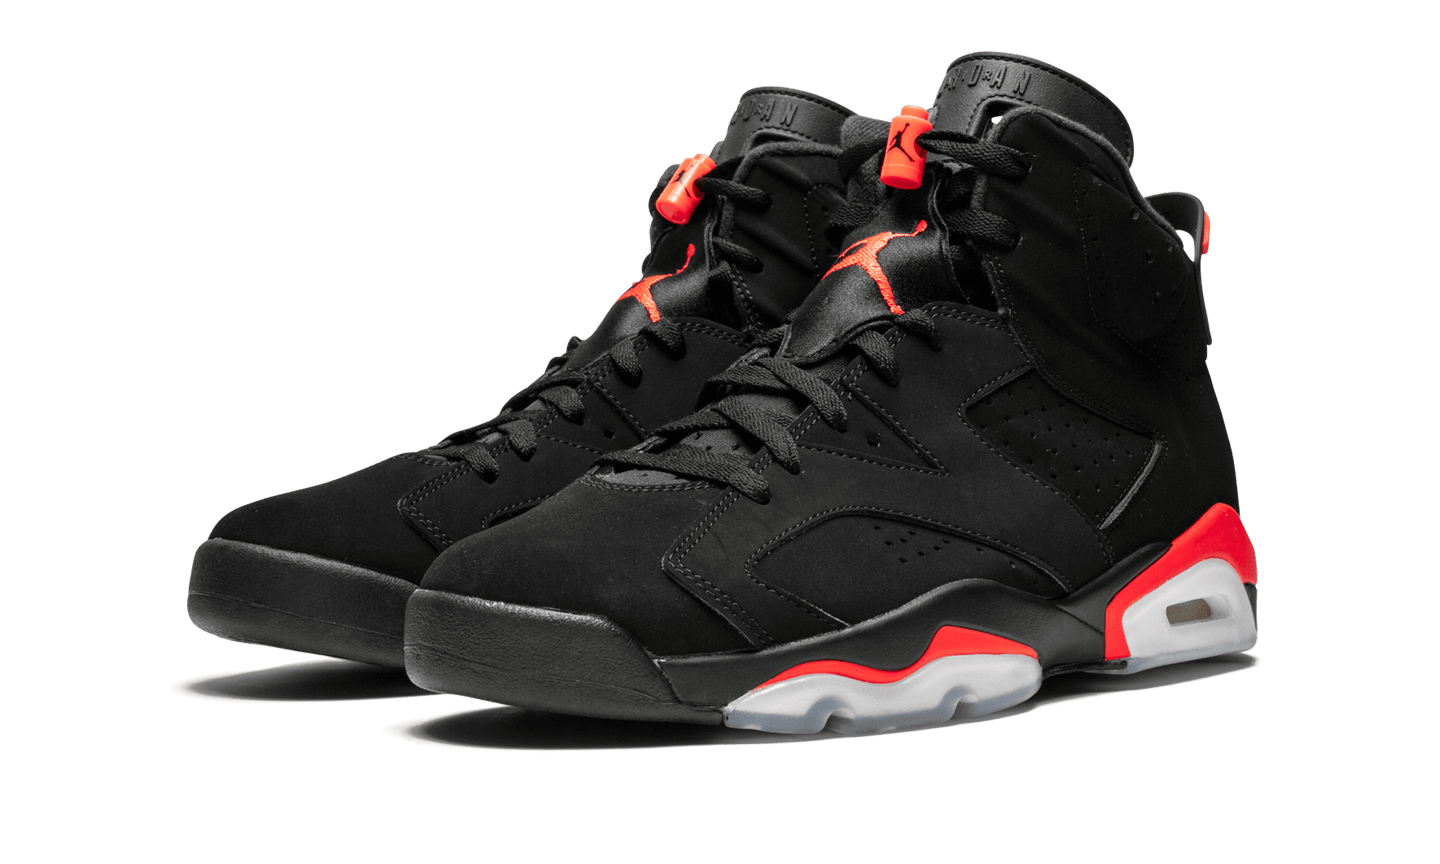 Jordan Air Jordan 6 Retro Black Infrared 2019 - Street Peek